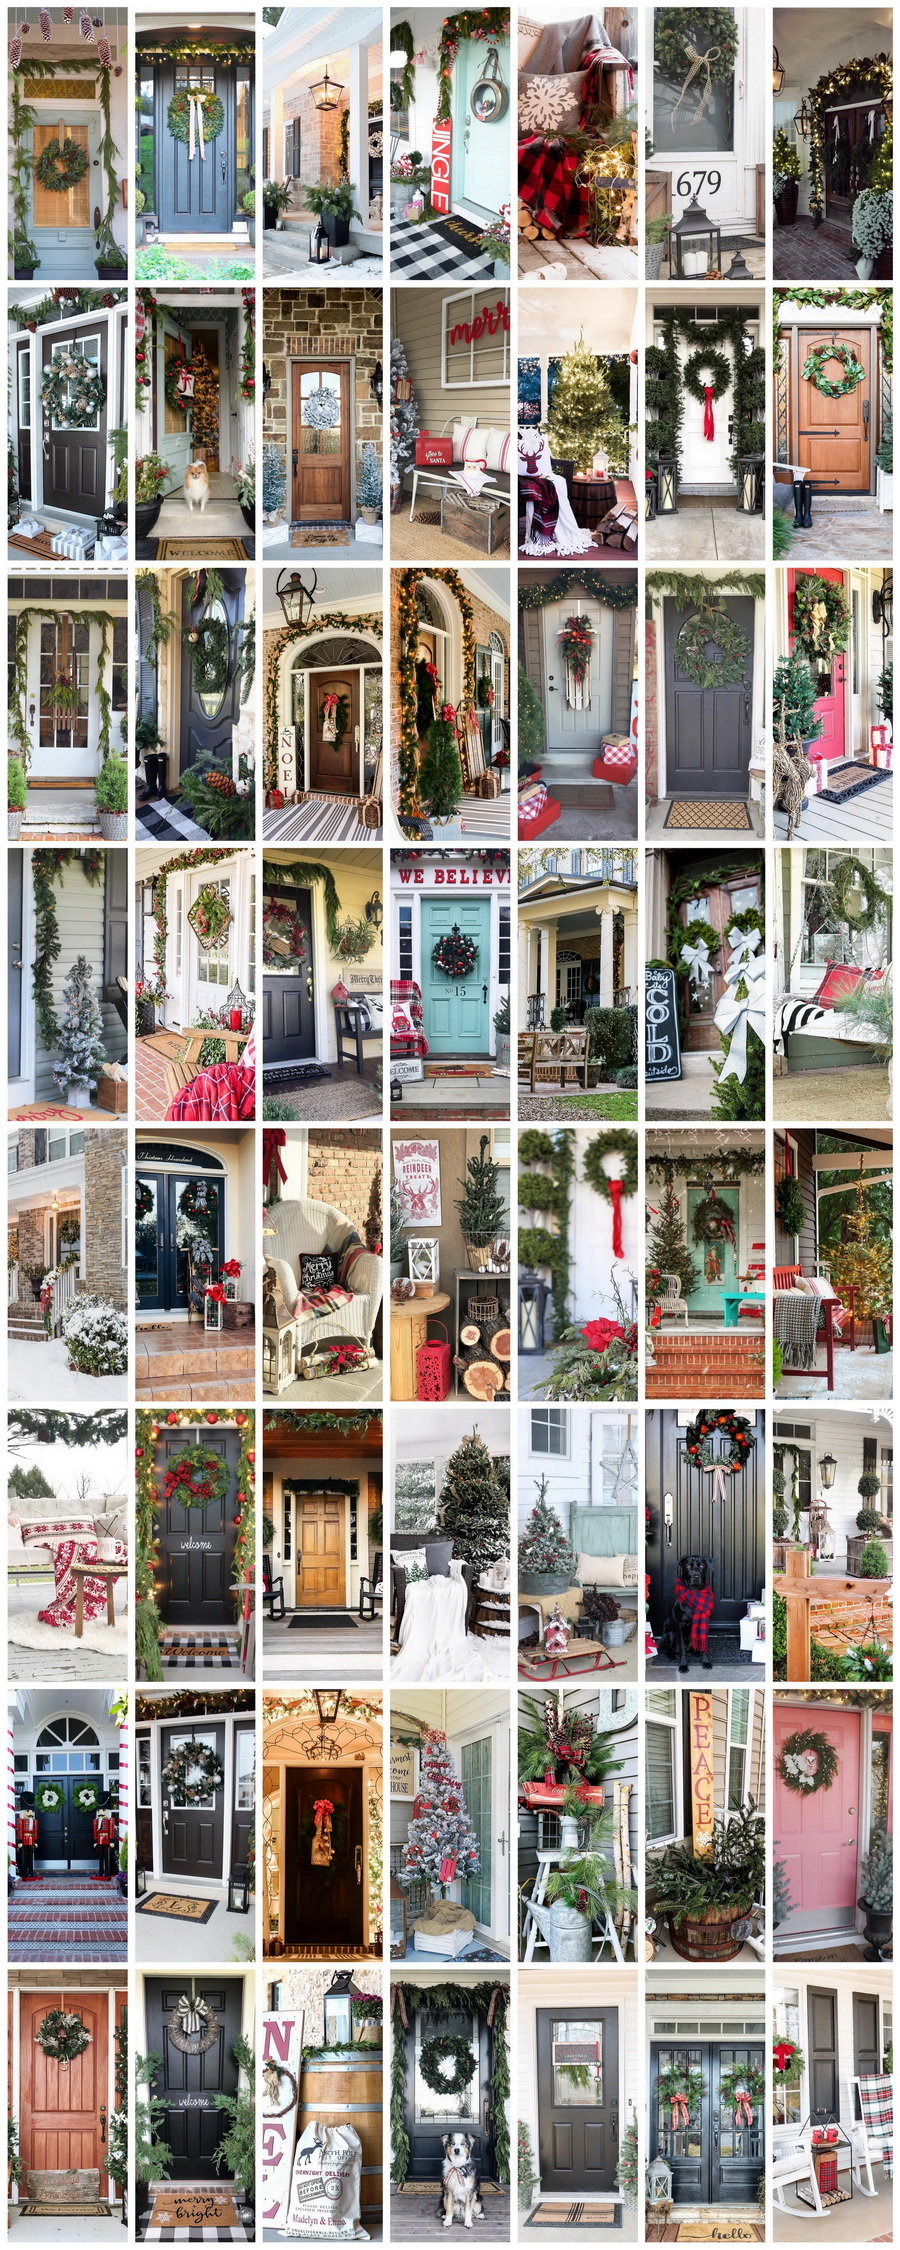 55 Magical Christmas Front Porch Ideas Decked With Holiday Style By Your Favorite Bloggers